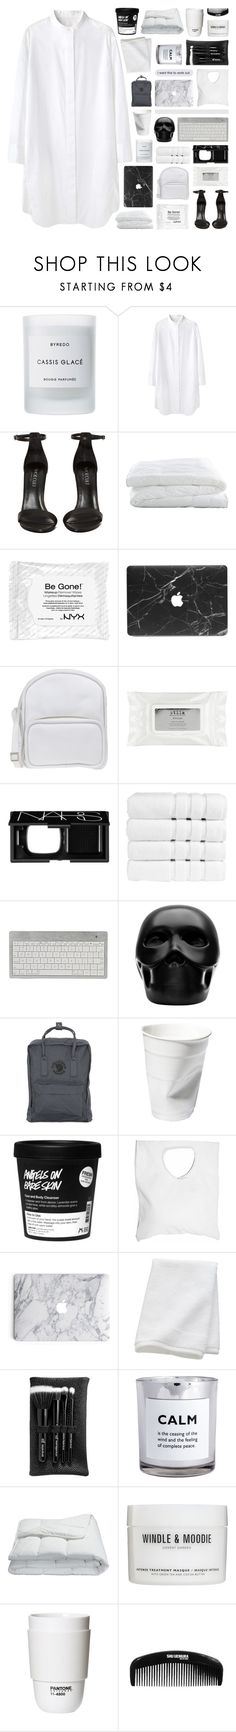 """""""theme tag: office"""" by randomn3ss ❤ liked on Polyvore featuring Byredo, Tsumori Chisato, Shoe Cult, Crate and Barrel, Jil Sander Navy, Stila, NARS Cosmetics, Christy, Gio Pagani and Fjällräven"""